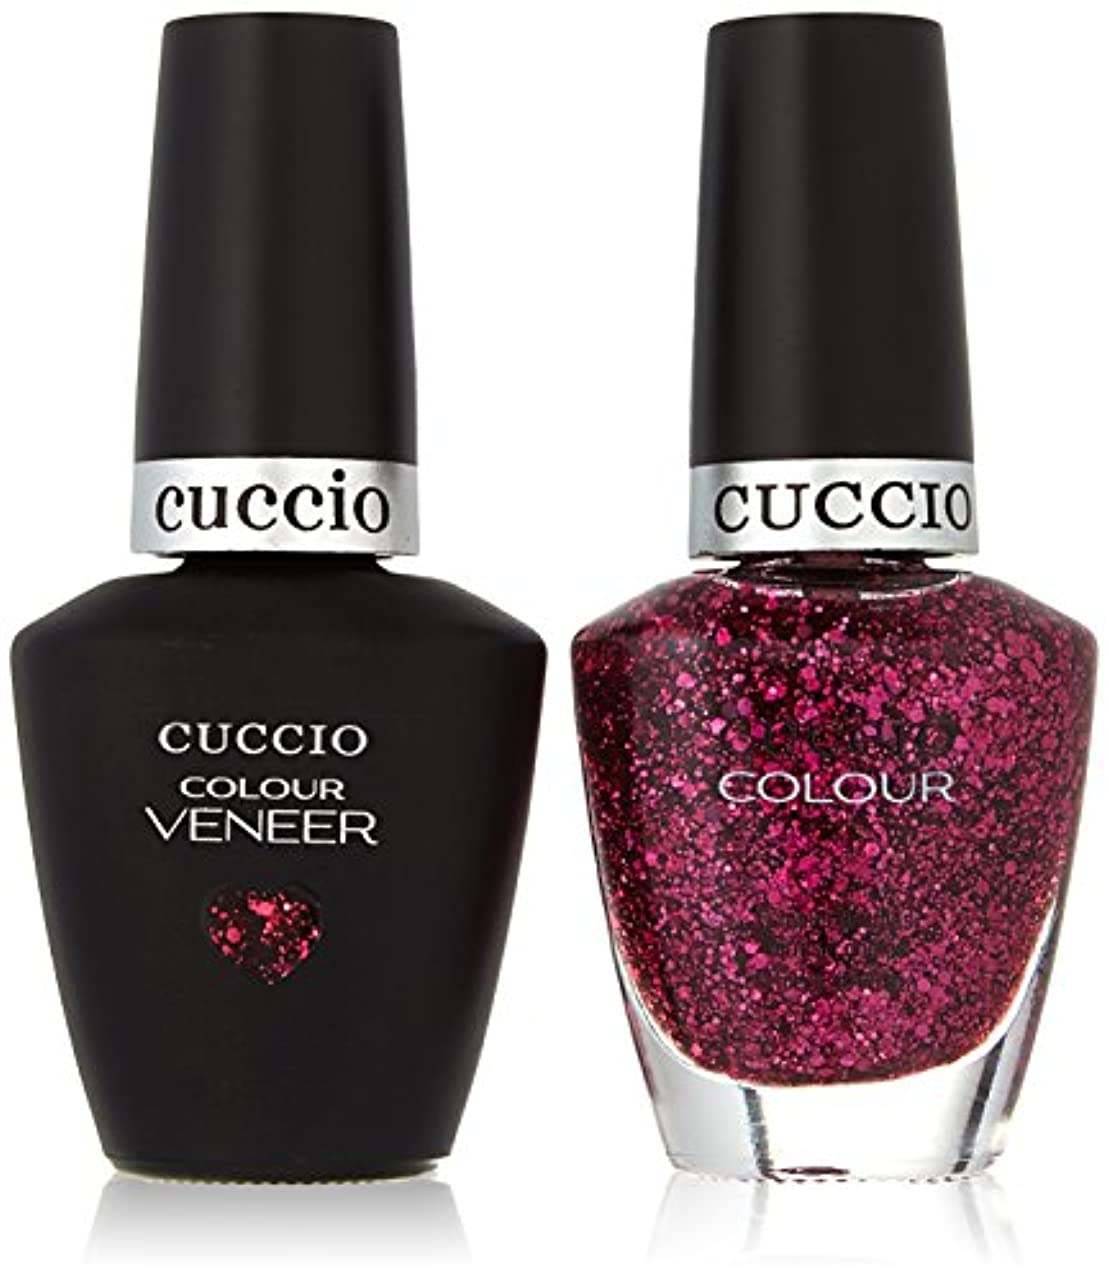 オーロック絡まるおもてなしCuccio MatchMakers Veneer & Lacquer - Fever of Love - 0.43oz/13ml Each